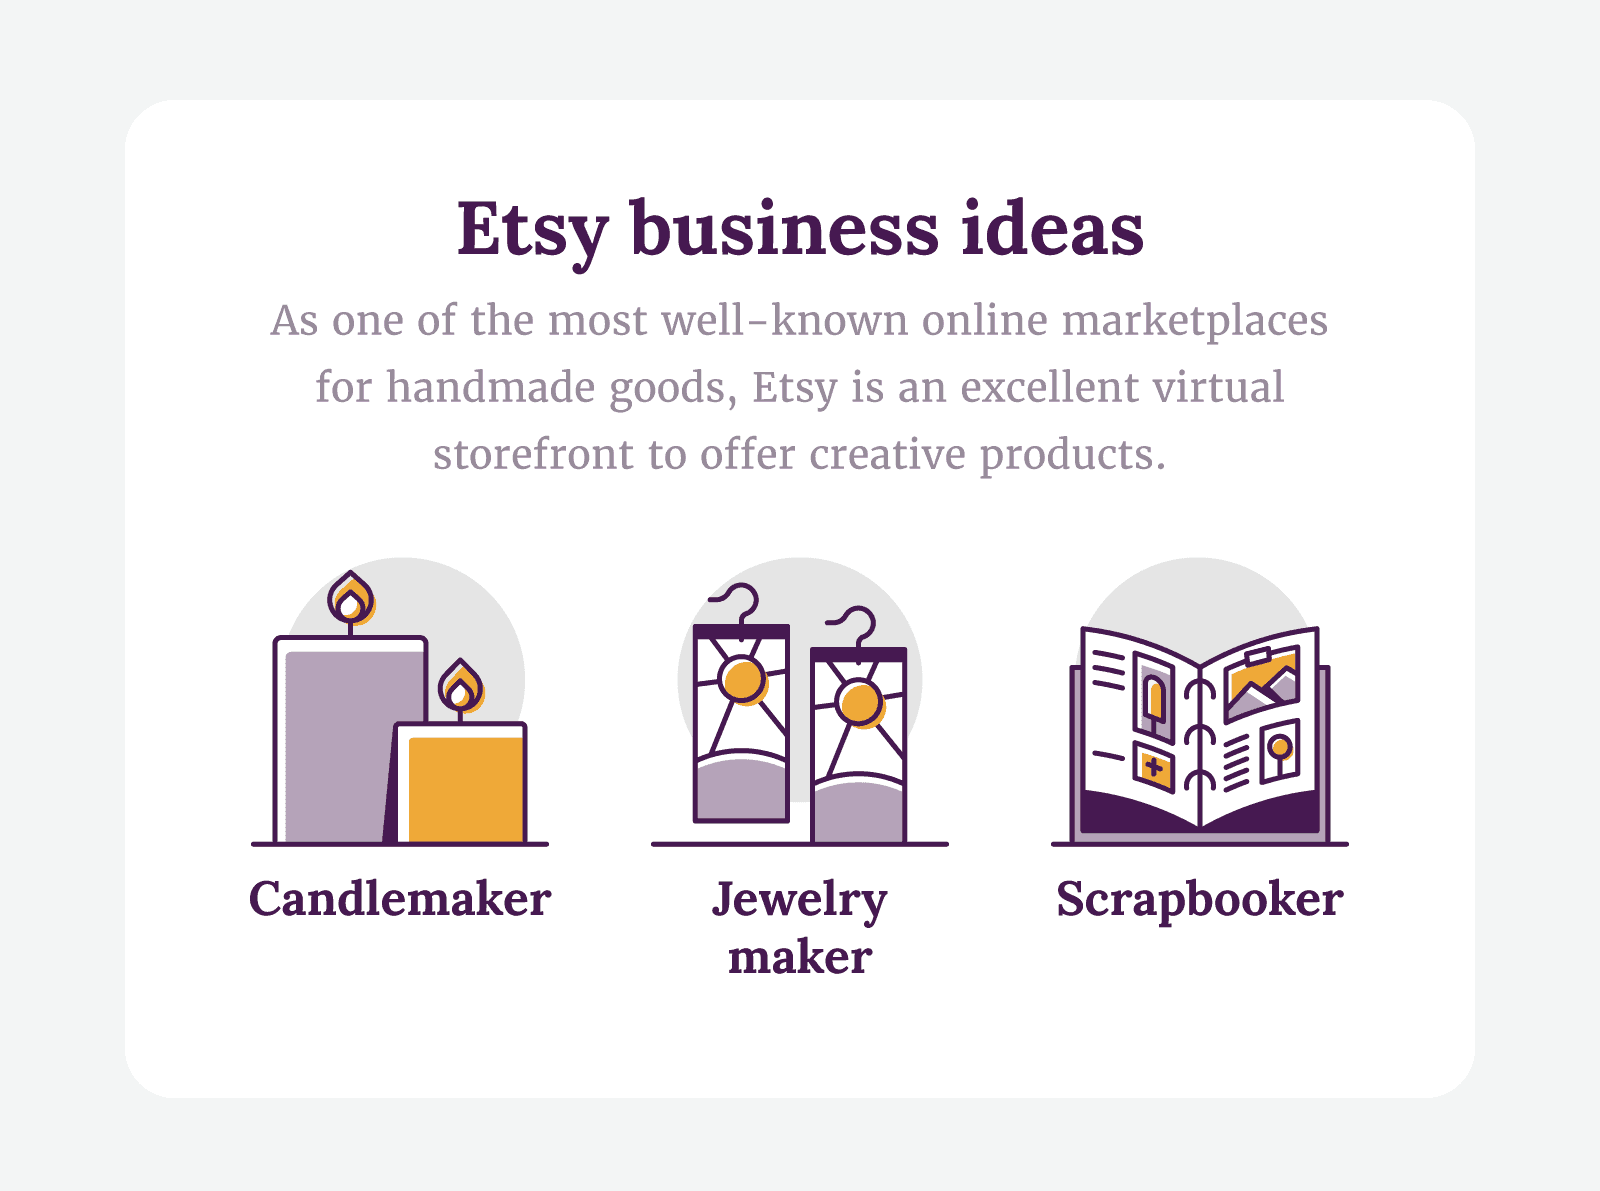 Etsy business ideas like candlemaker, jewelry maker and scrapbooker